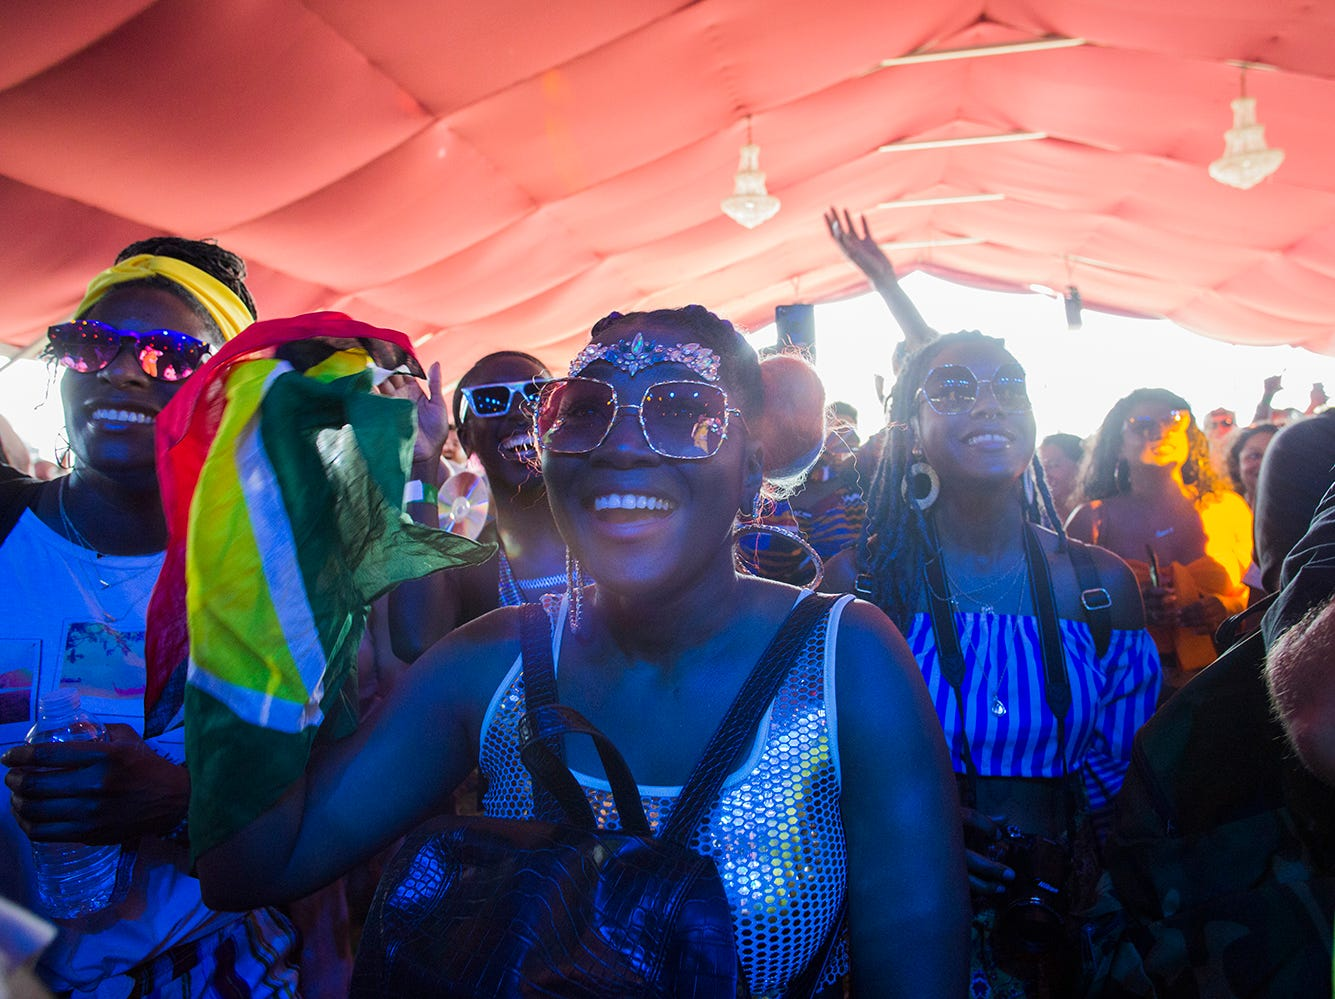 A fan of Calypso Rose enjoys her music at the Gobi Tent during the 2019 Coachella Valley Music and Arts Festival held at the Empire Polo Club in Indio, California on April 12, 2019.